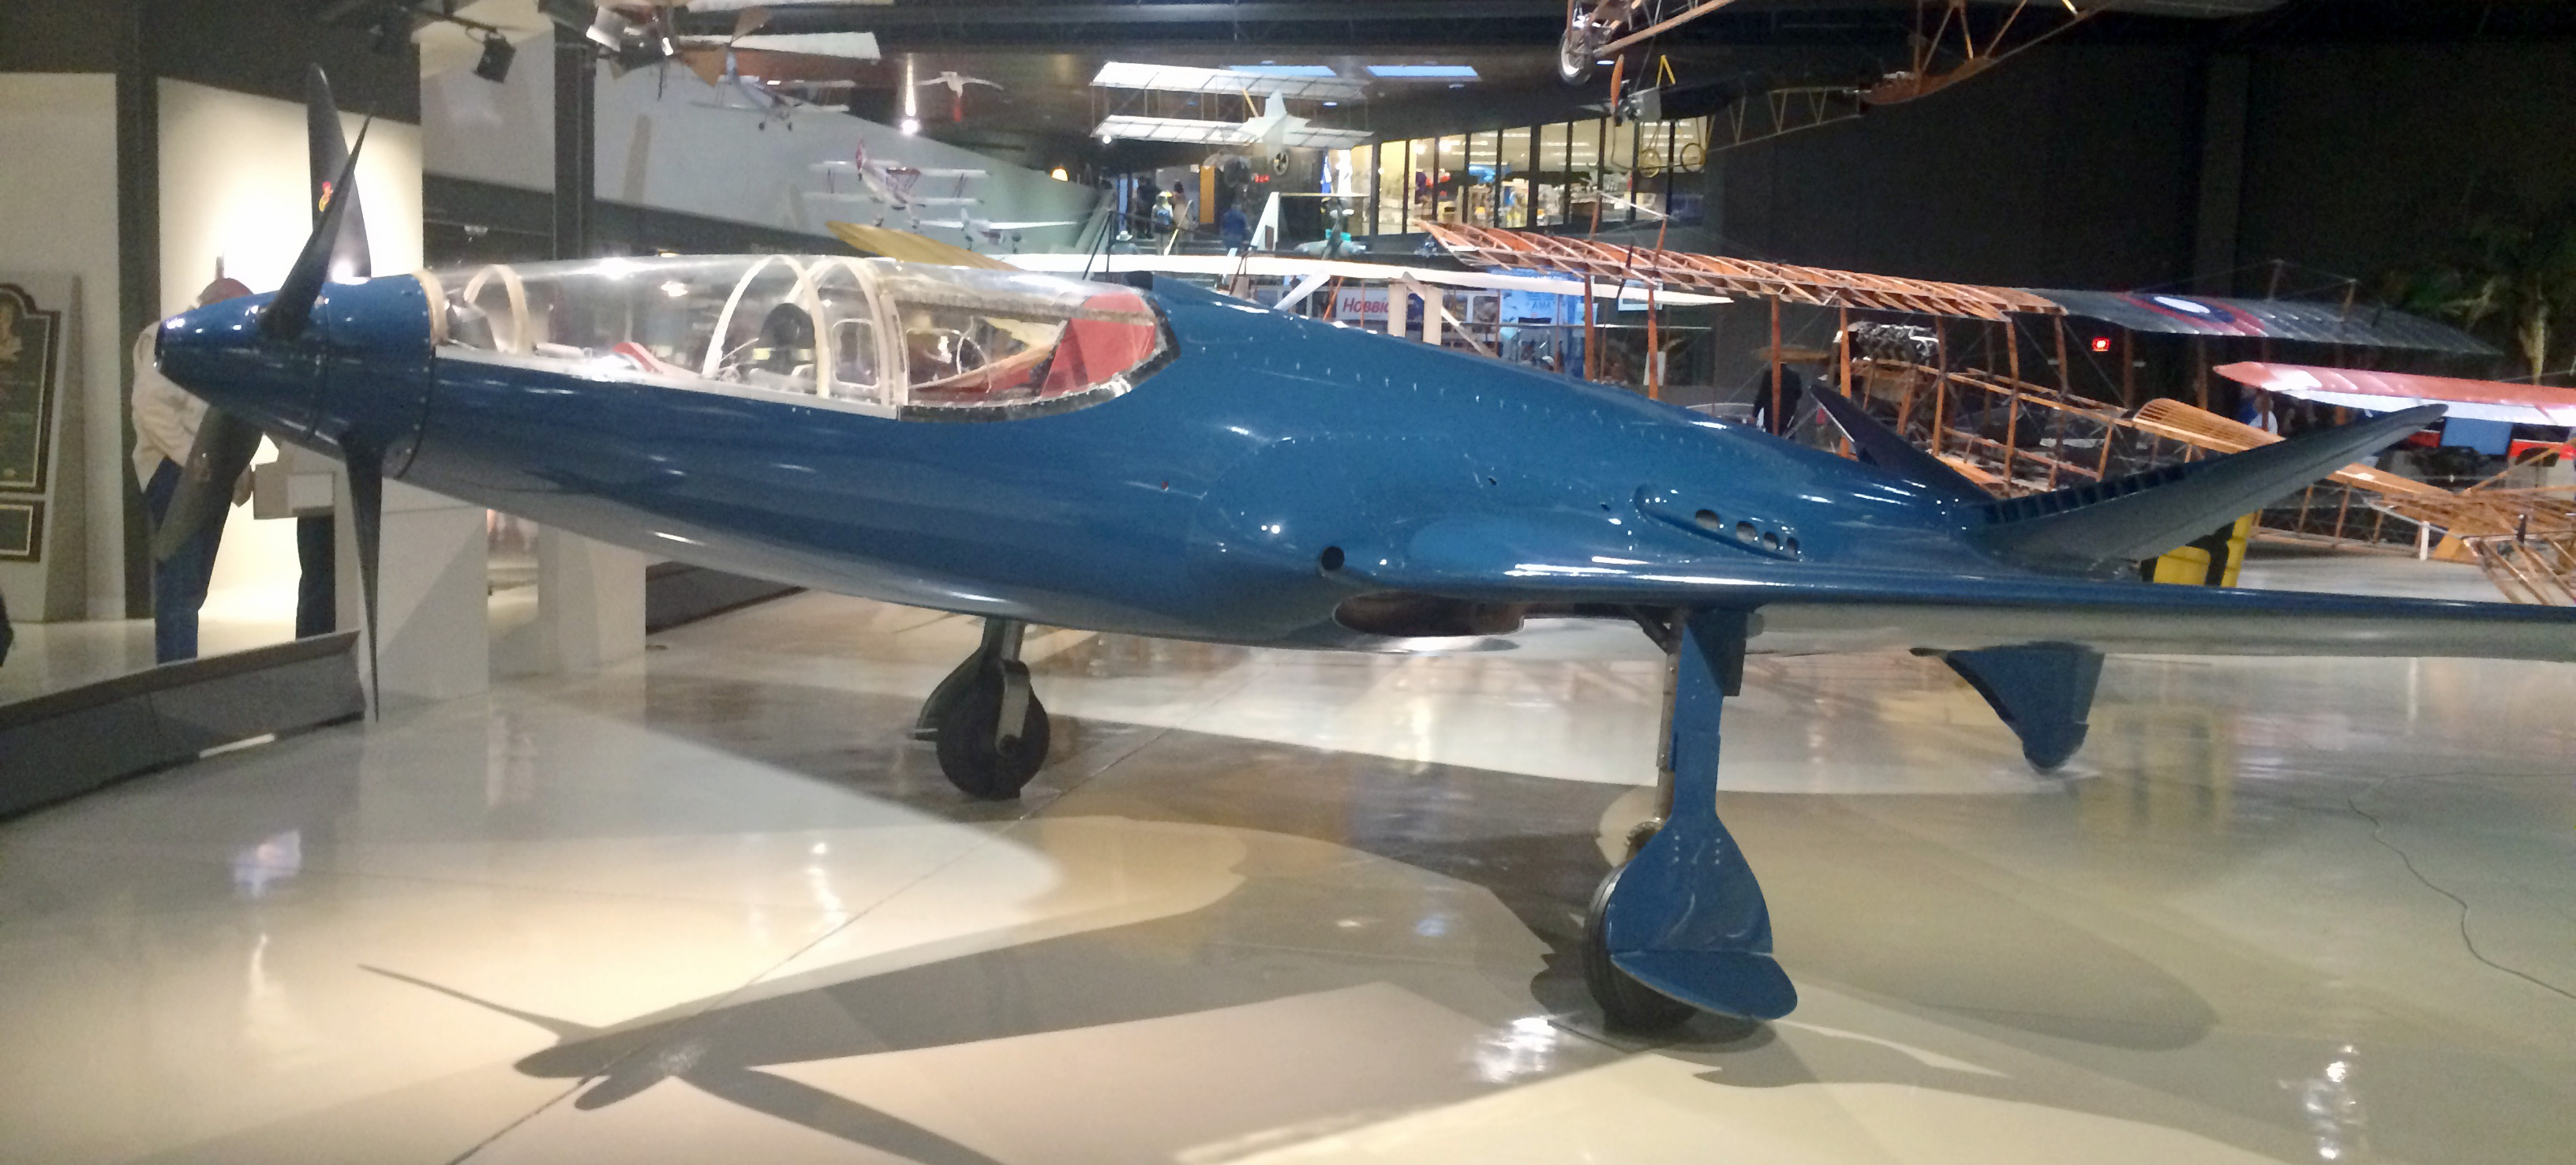 Original Bugatti 100p on display